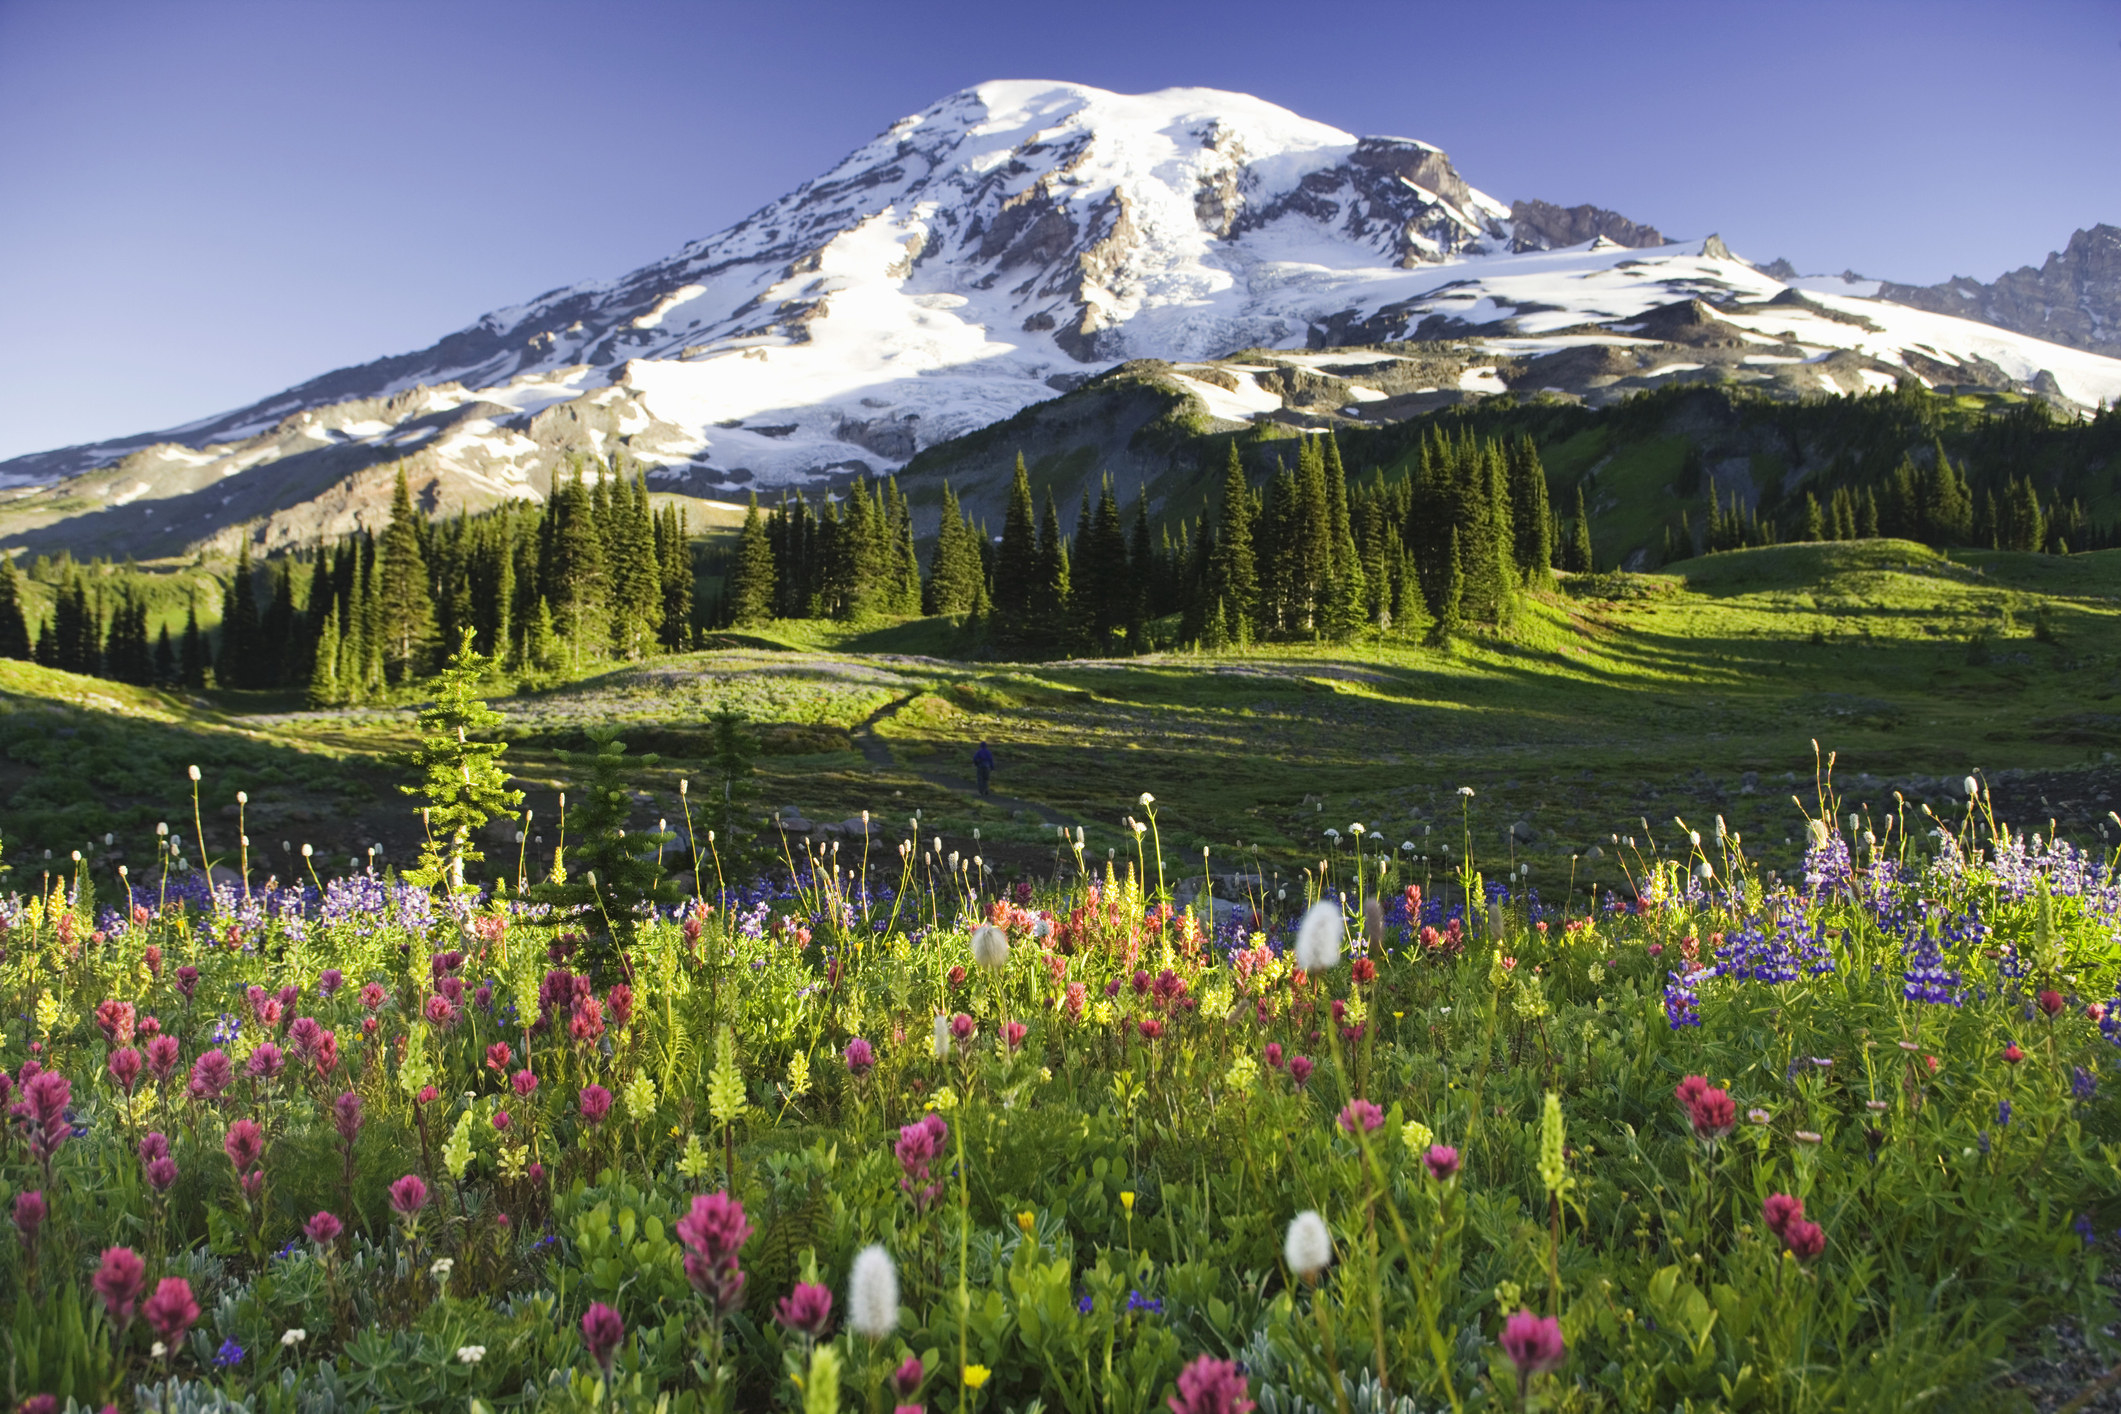 Snow capped Mt. Rainier rises into a blue sky with greenery and wildflowers in the foreground